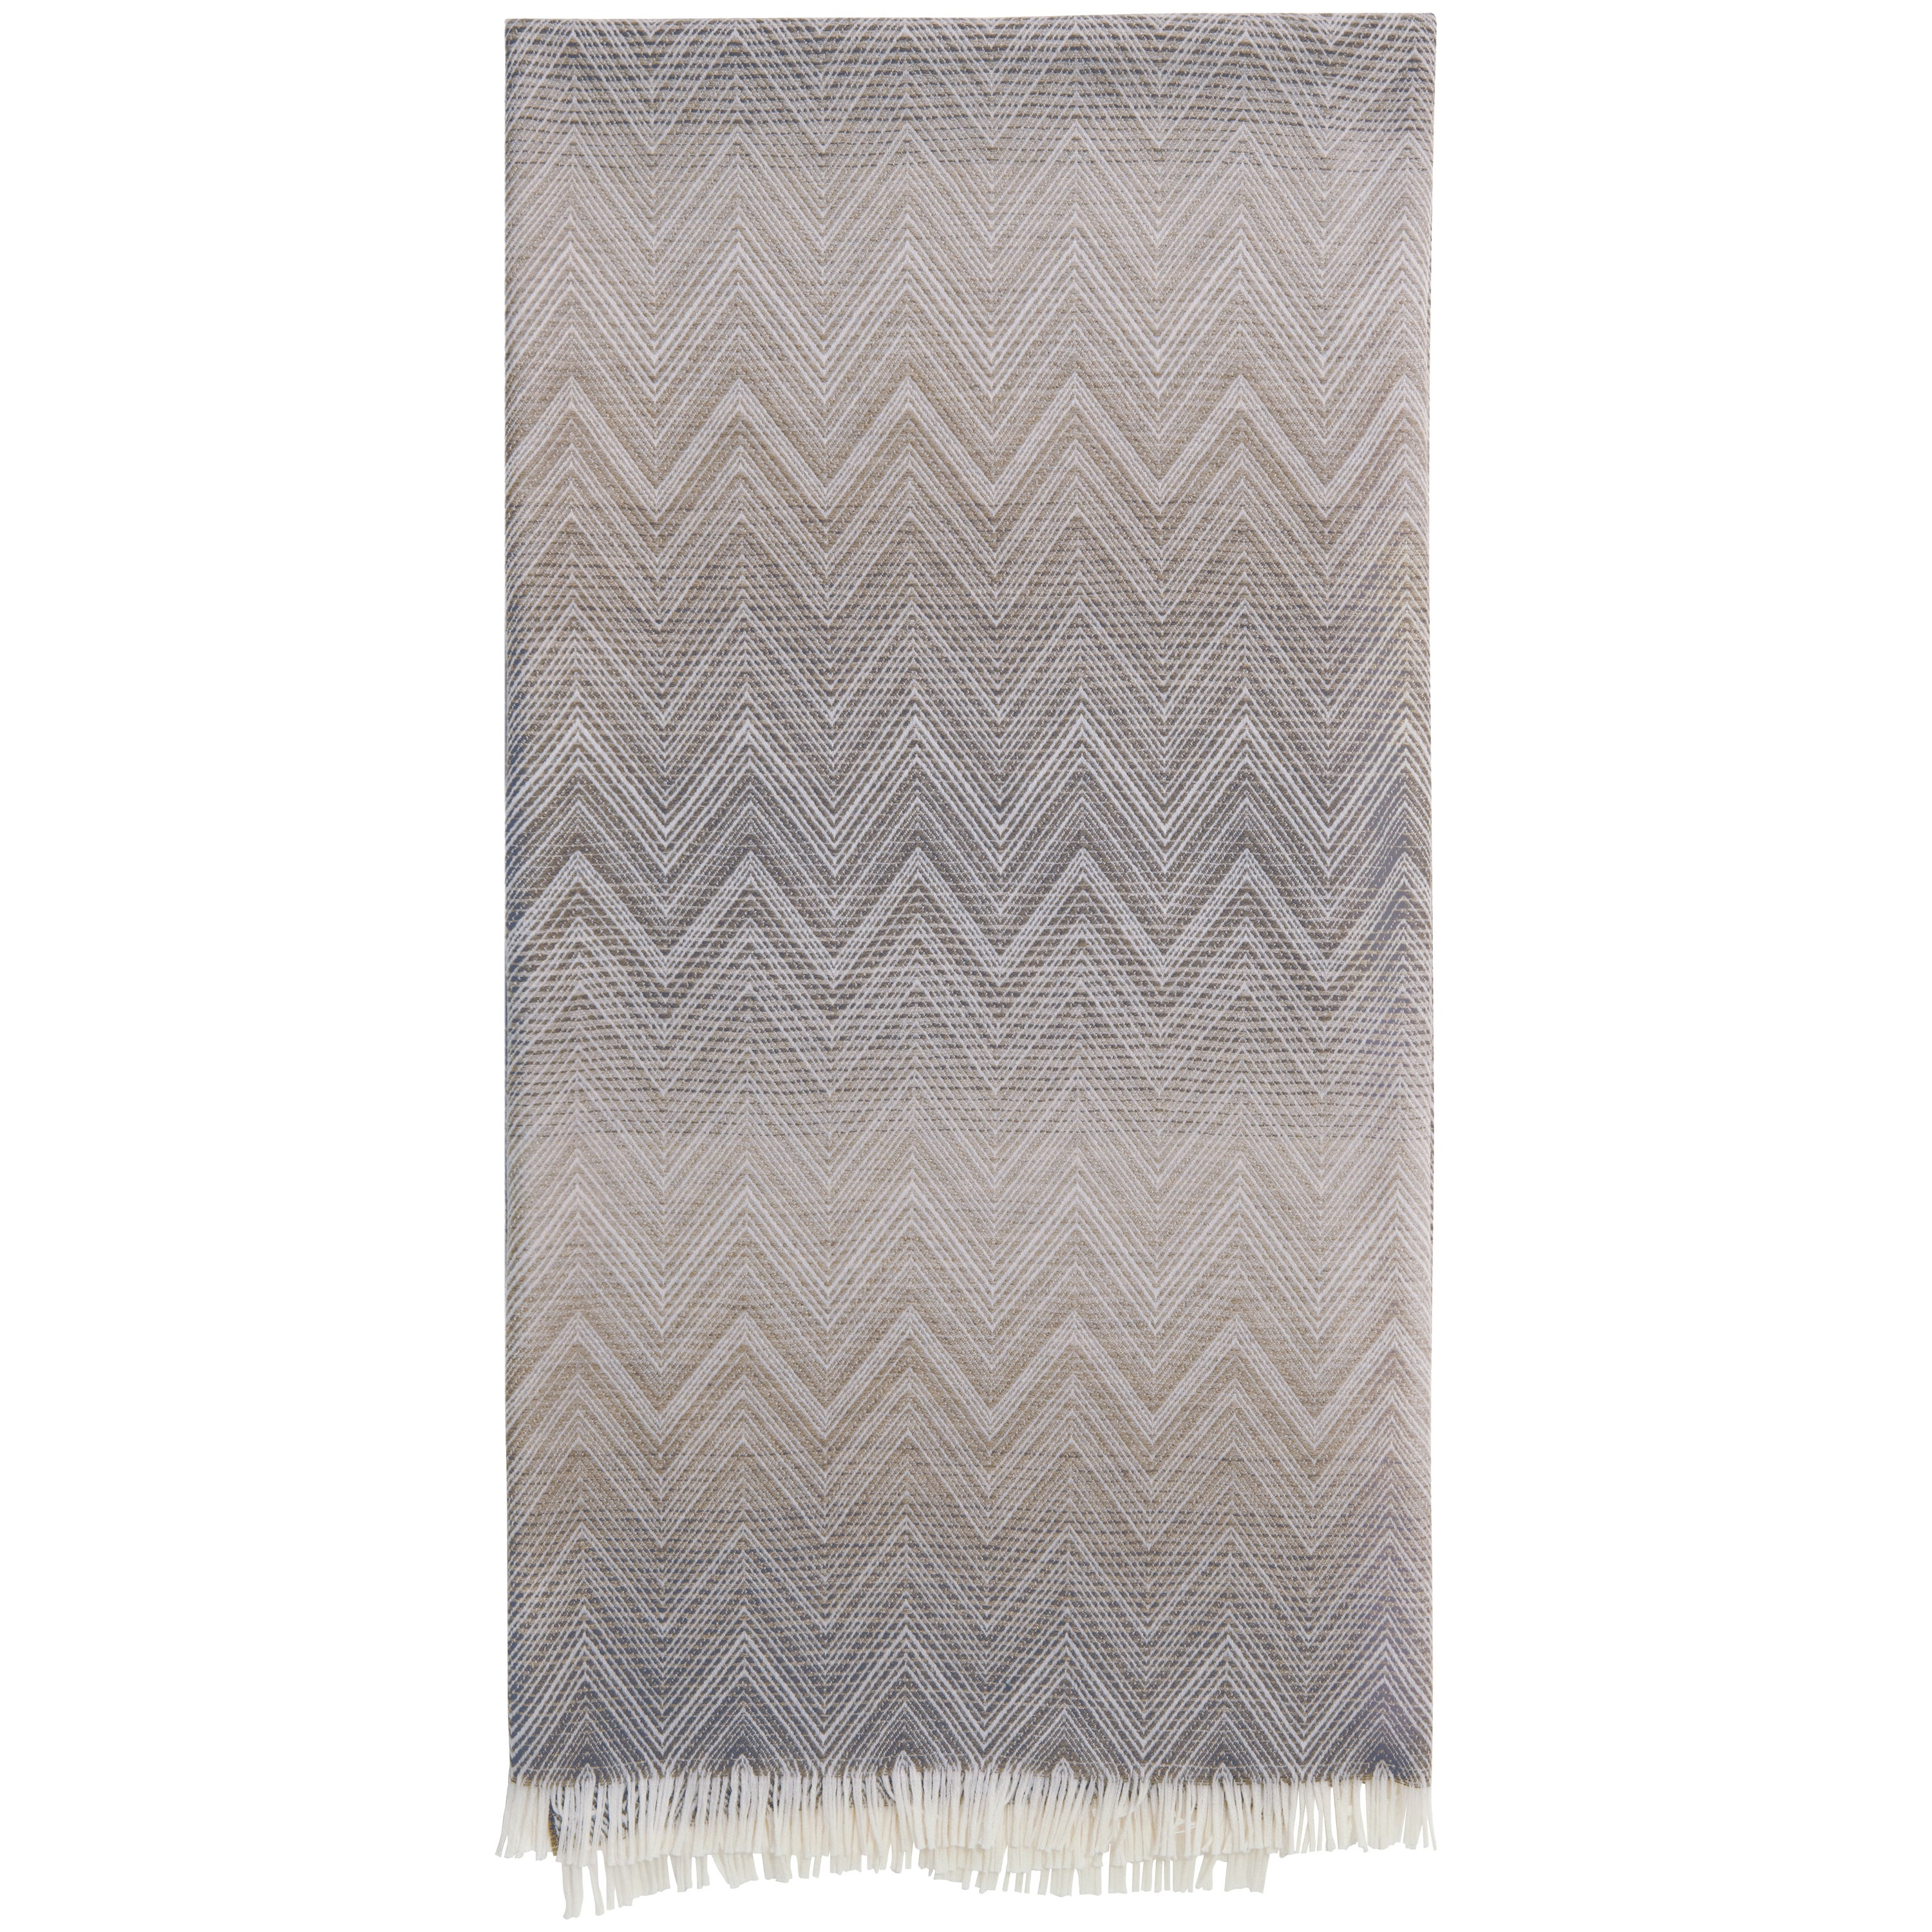 Missoni Home Timmy Throw in Beige and Gray Chevron Print